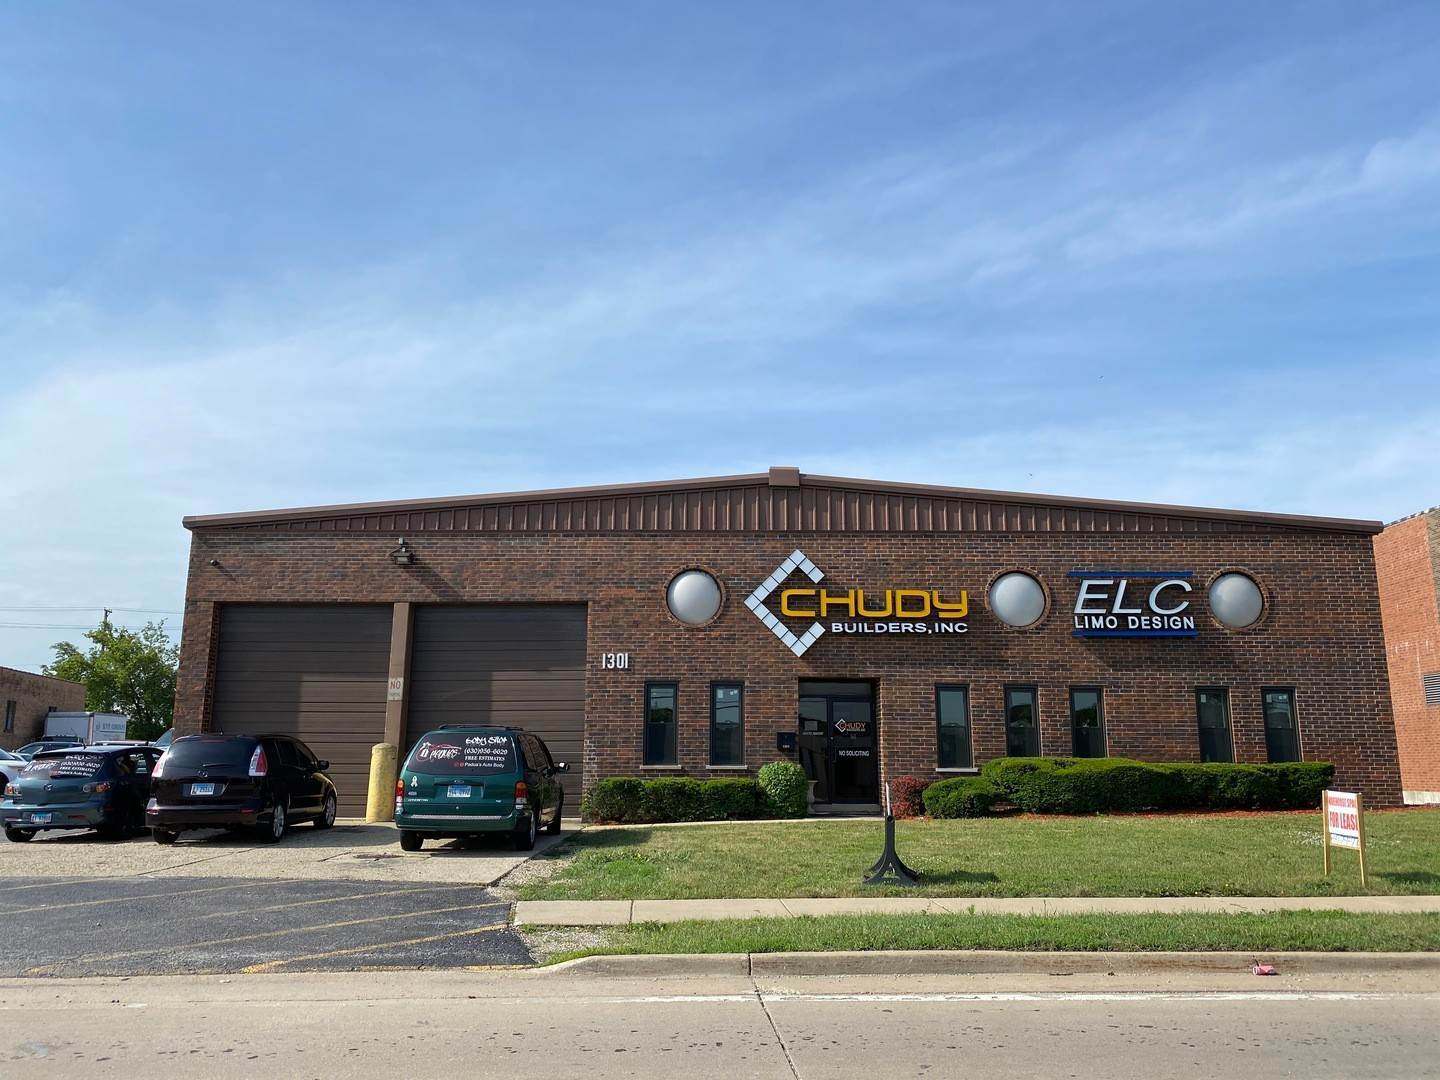 Commercial for Sale at 1301 Landmeier Road Elk Grove Village, Illinois 60007 United States